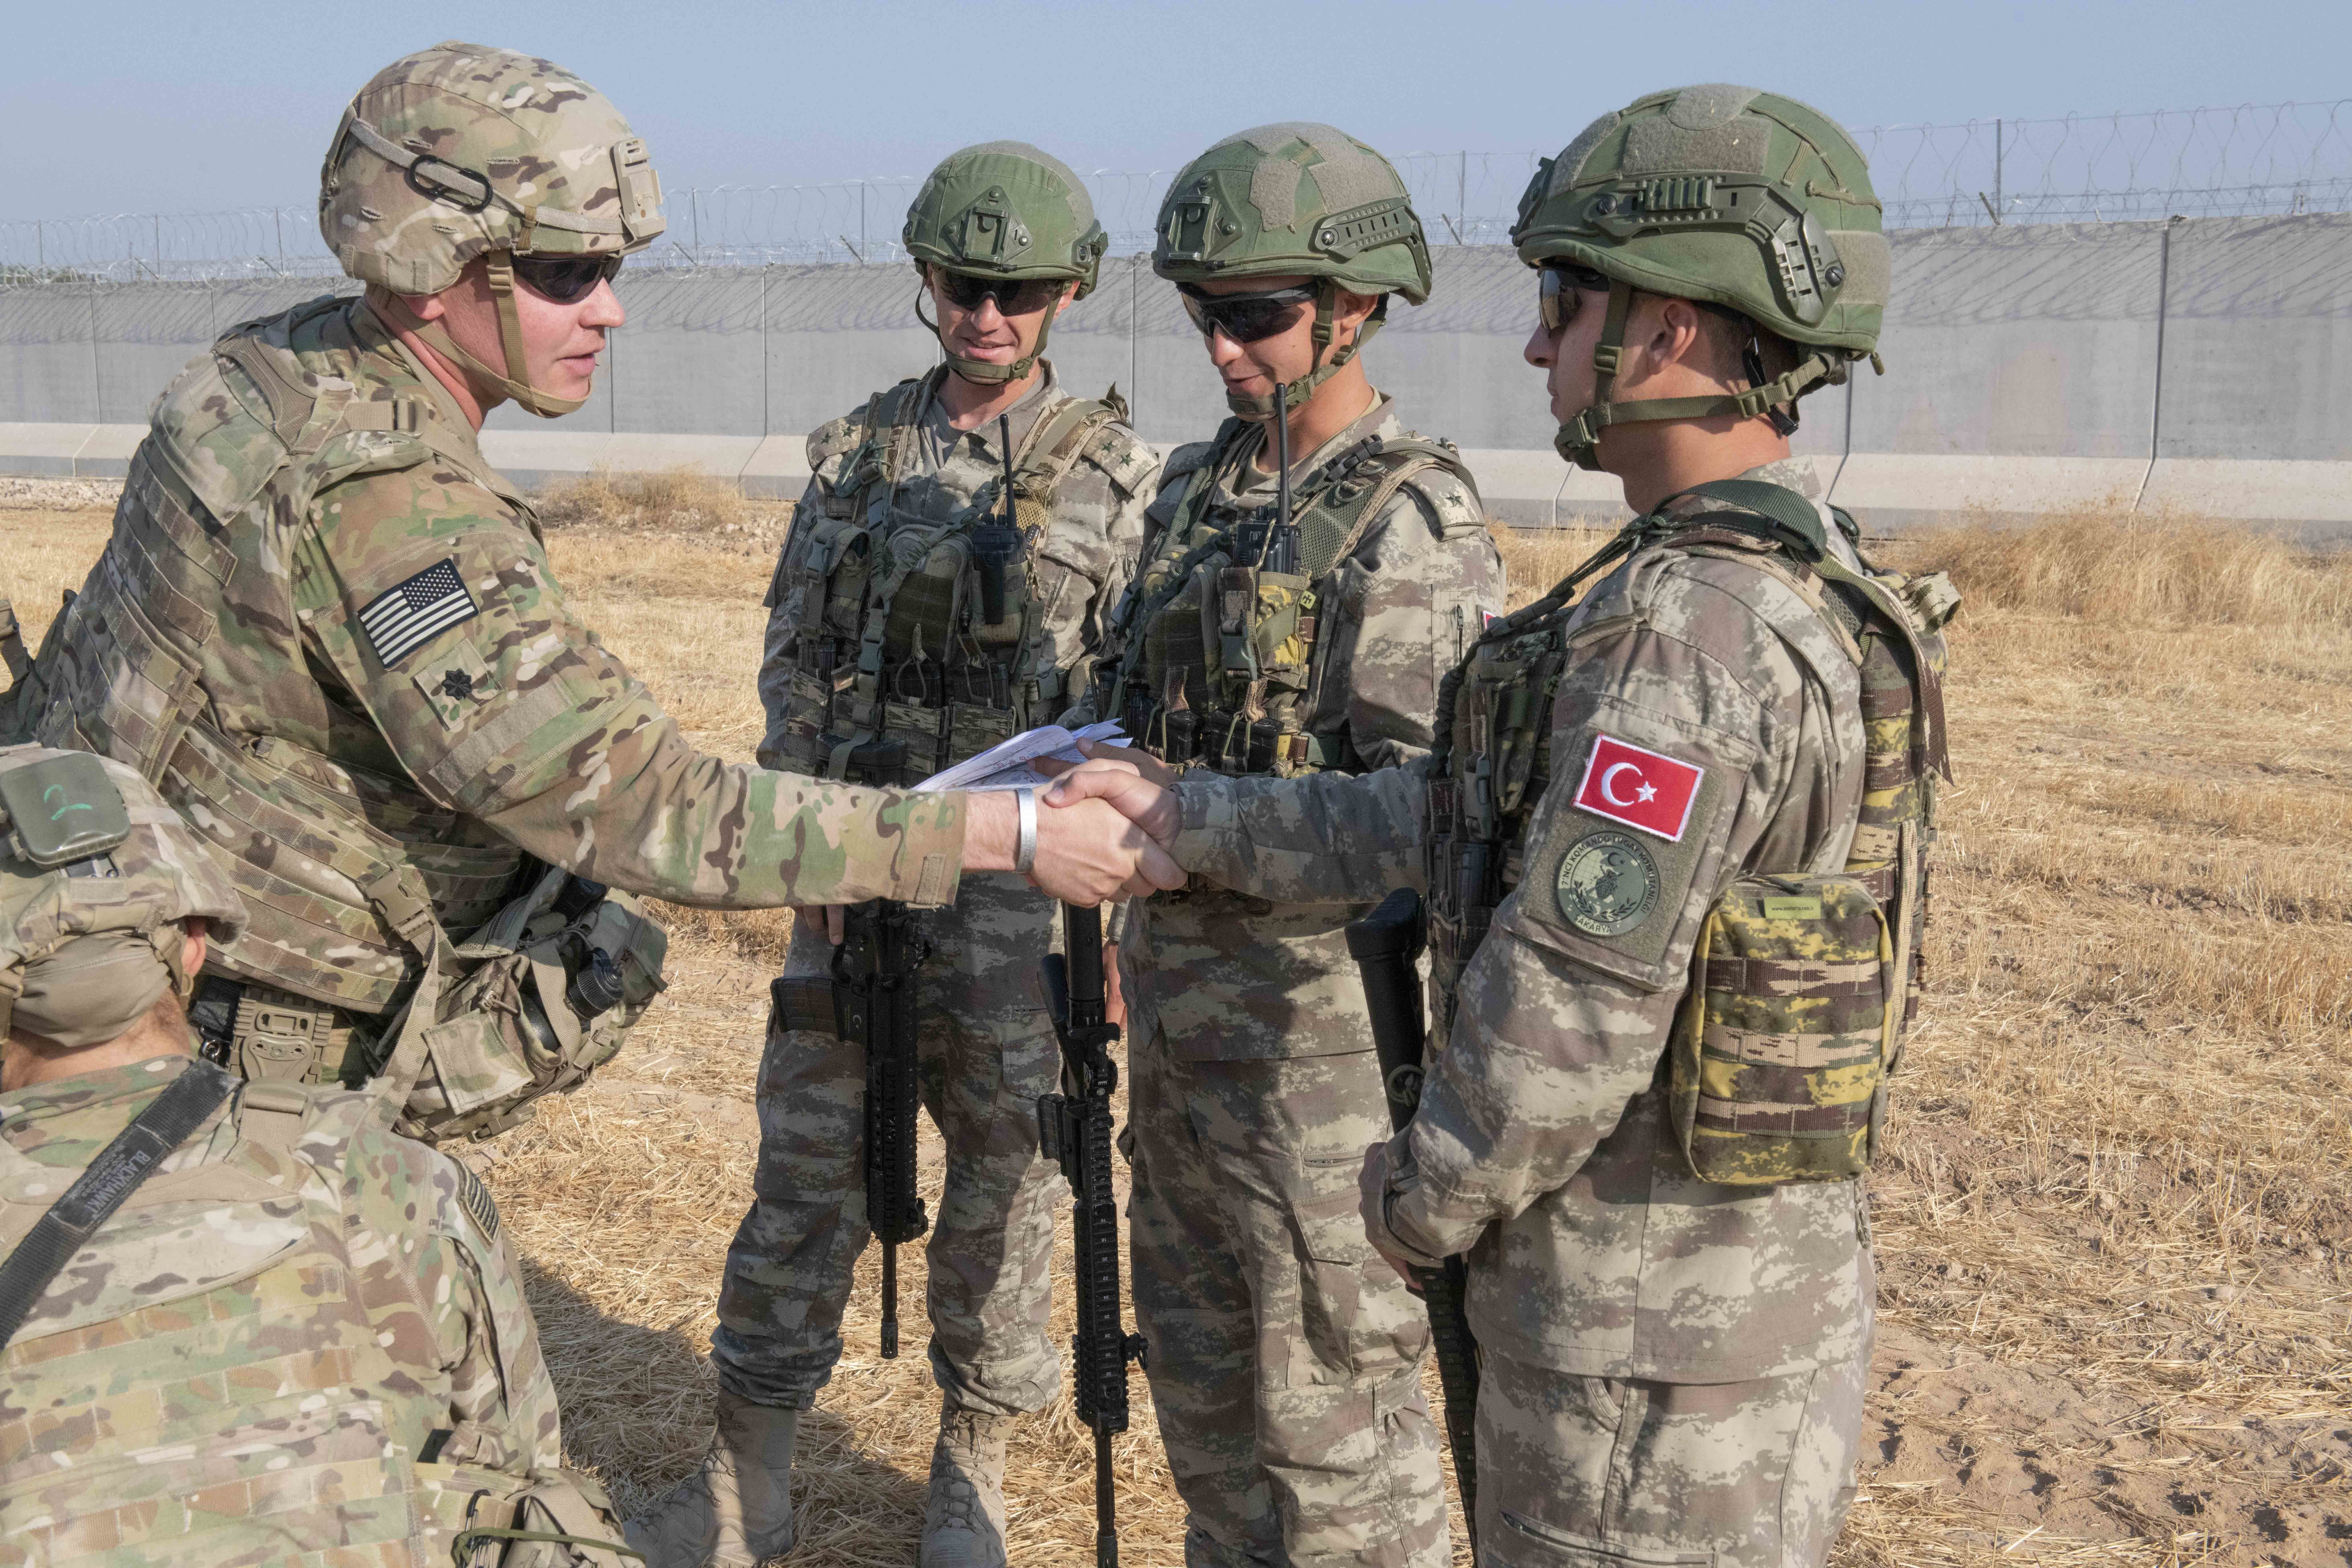 NORTHEAST, SYRIA - OCTOBER 4: In this handout provided by the U.S. Army, U.S. and Turkish military forces conduct the third ground combined joint patrol inside the security mechanism area in northeast Syria, Oct. 4, 2019. The patrol allowed both militaries to observe first-hand progress on destroyed fortification that is a concern for Turkey. The security mechanism is intended to address Turkey's security concerns, maintain security in northeast Syria so Daesh cannot reemerge, and allow the Coalition to remain focused on achieving the enduring defeat of Daesh. The U.S. is currently executing concrete steps to ensure the border area in northeast Syria remains stable and secure. (Photo by Andrew Goedl/U.S. Army via Getty Images)